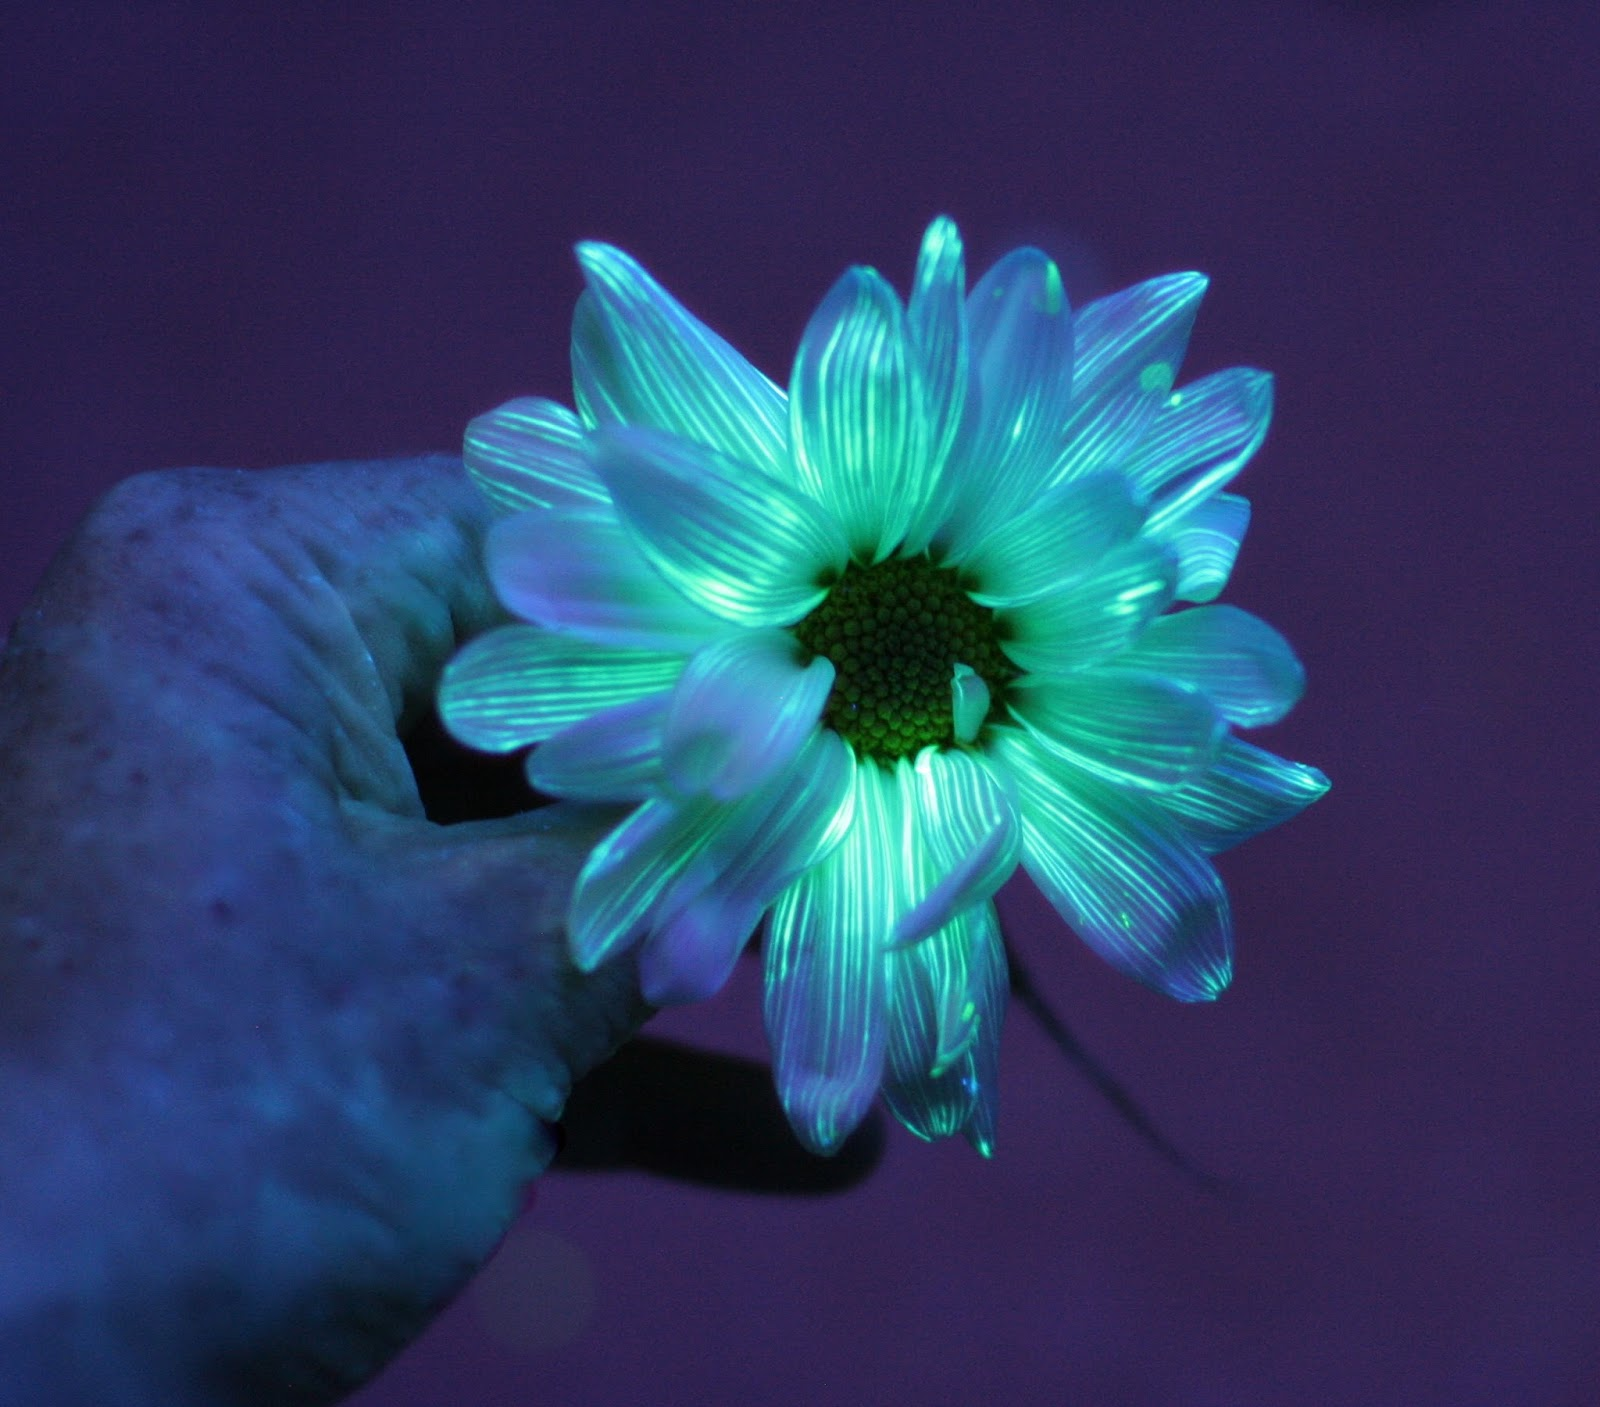 Glowing flower photo